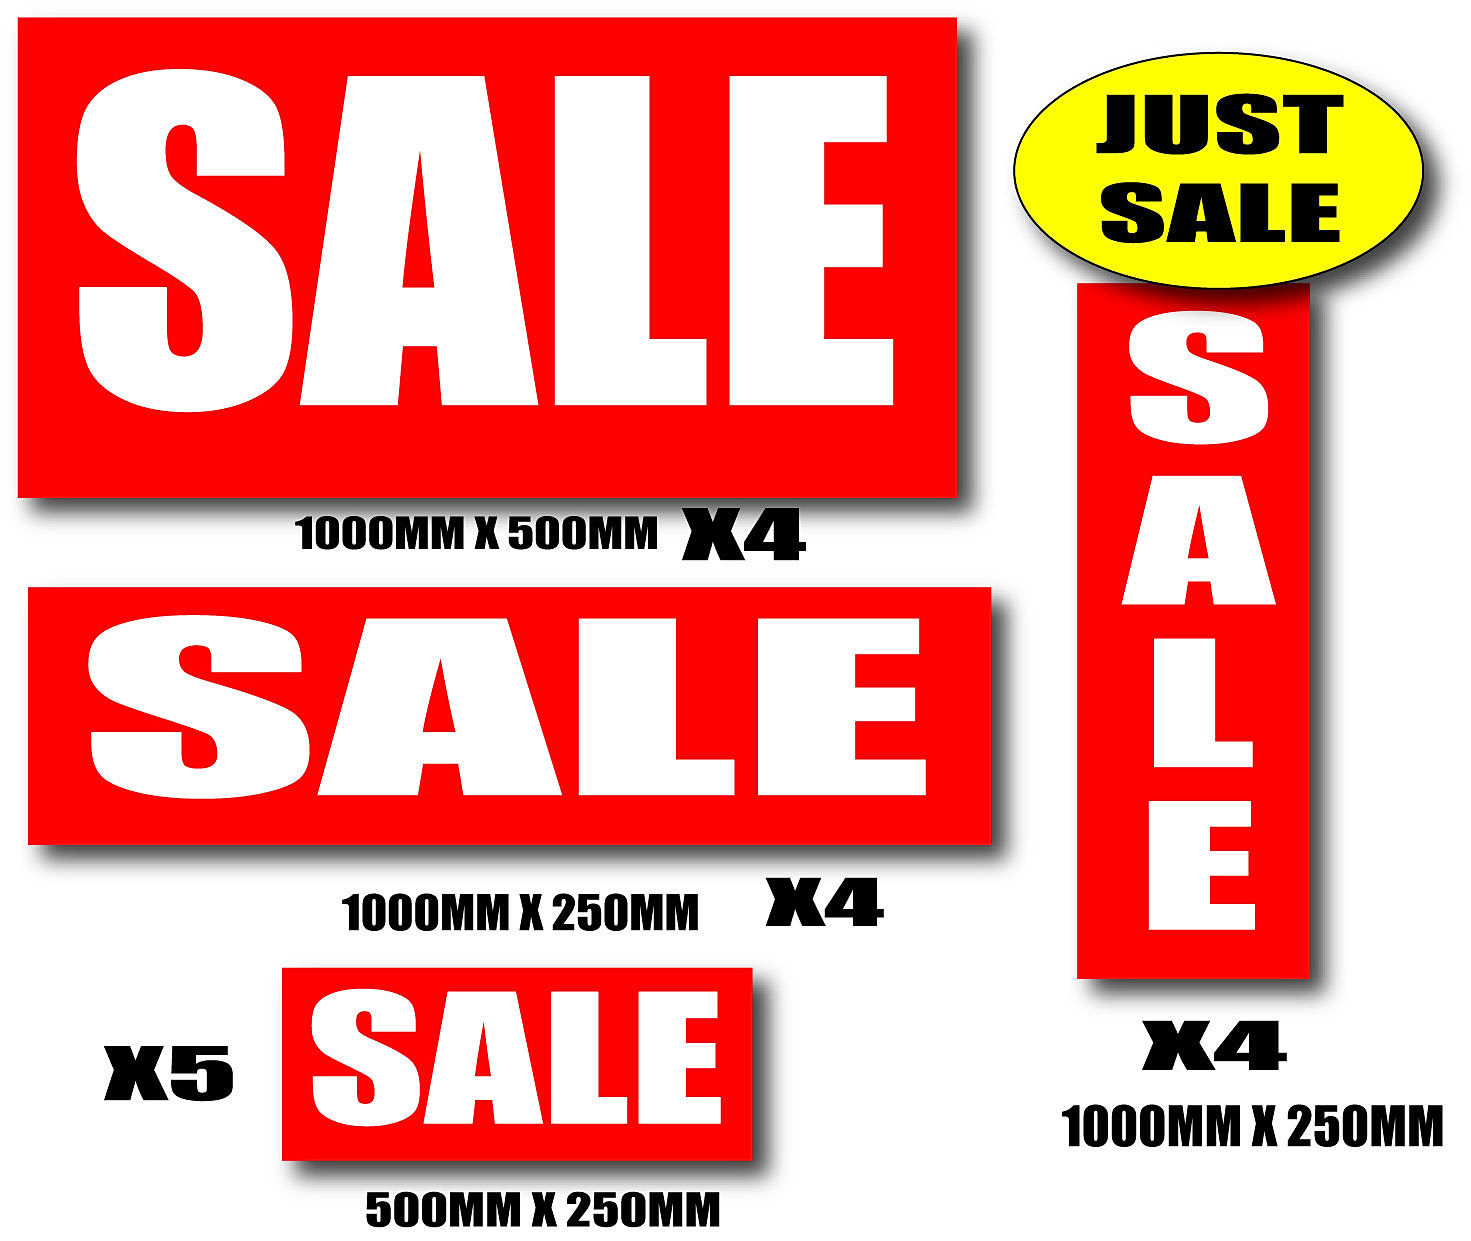 Sale posters and signs for shops and retail sale posters pack jpg